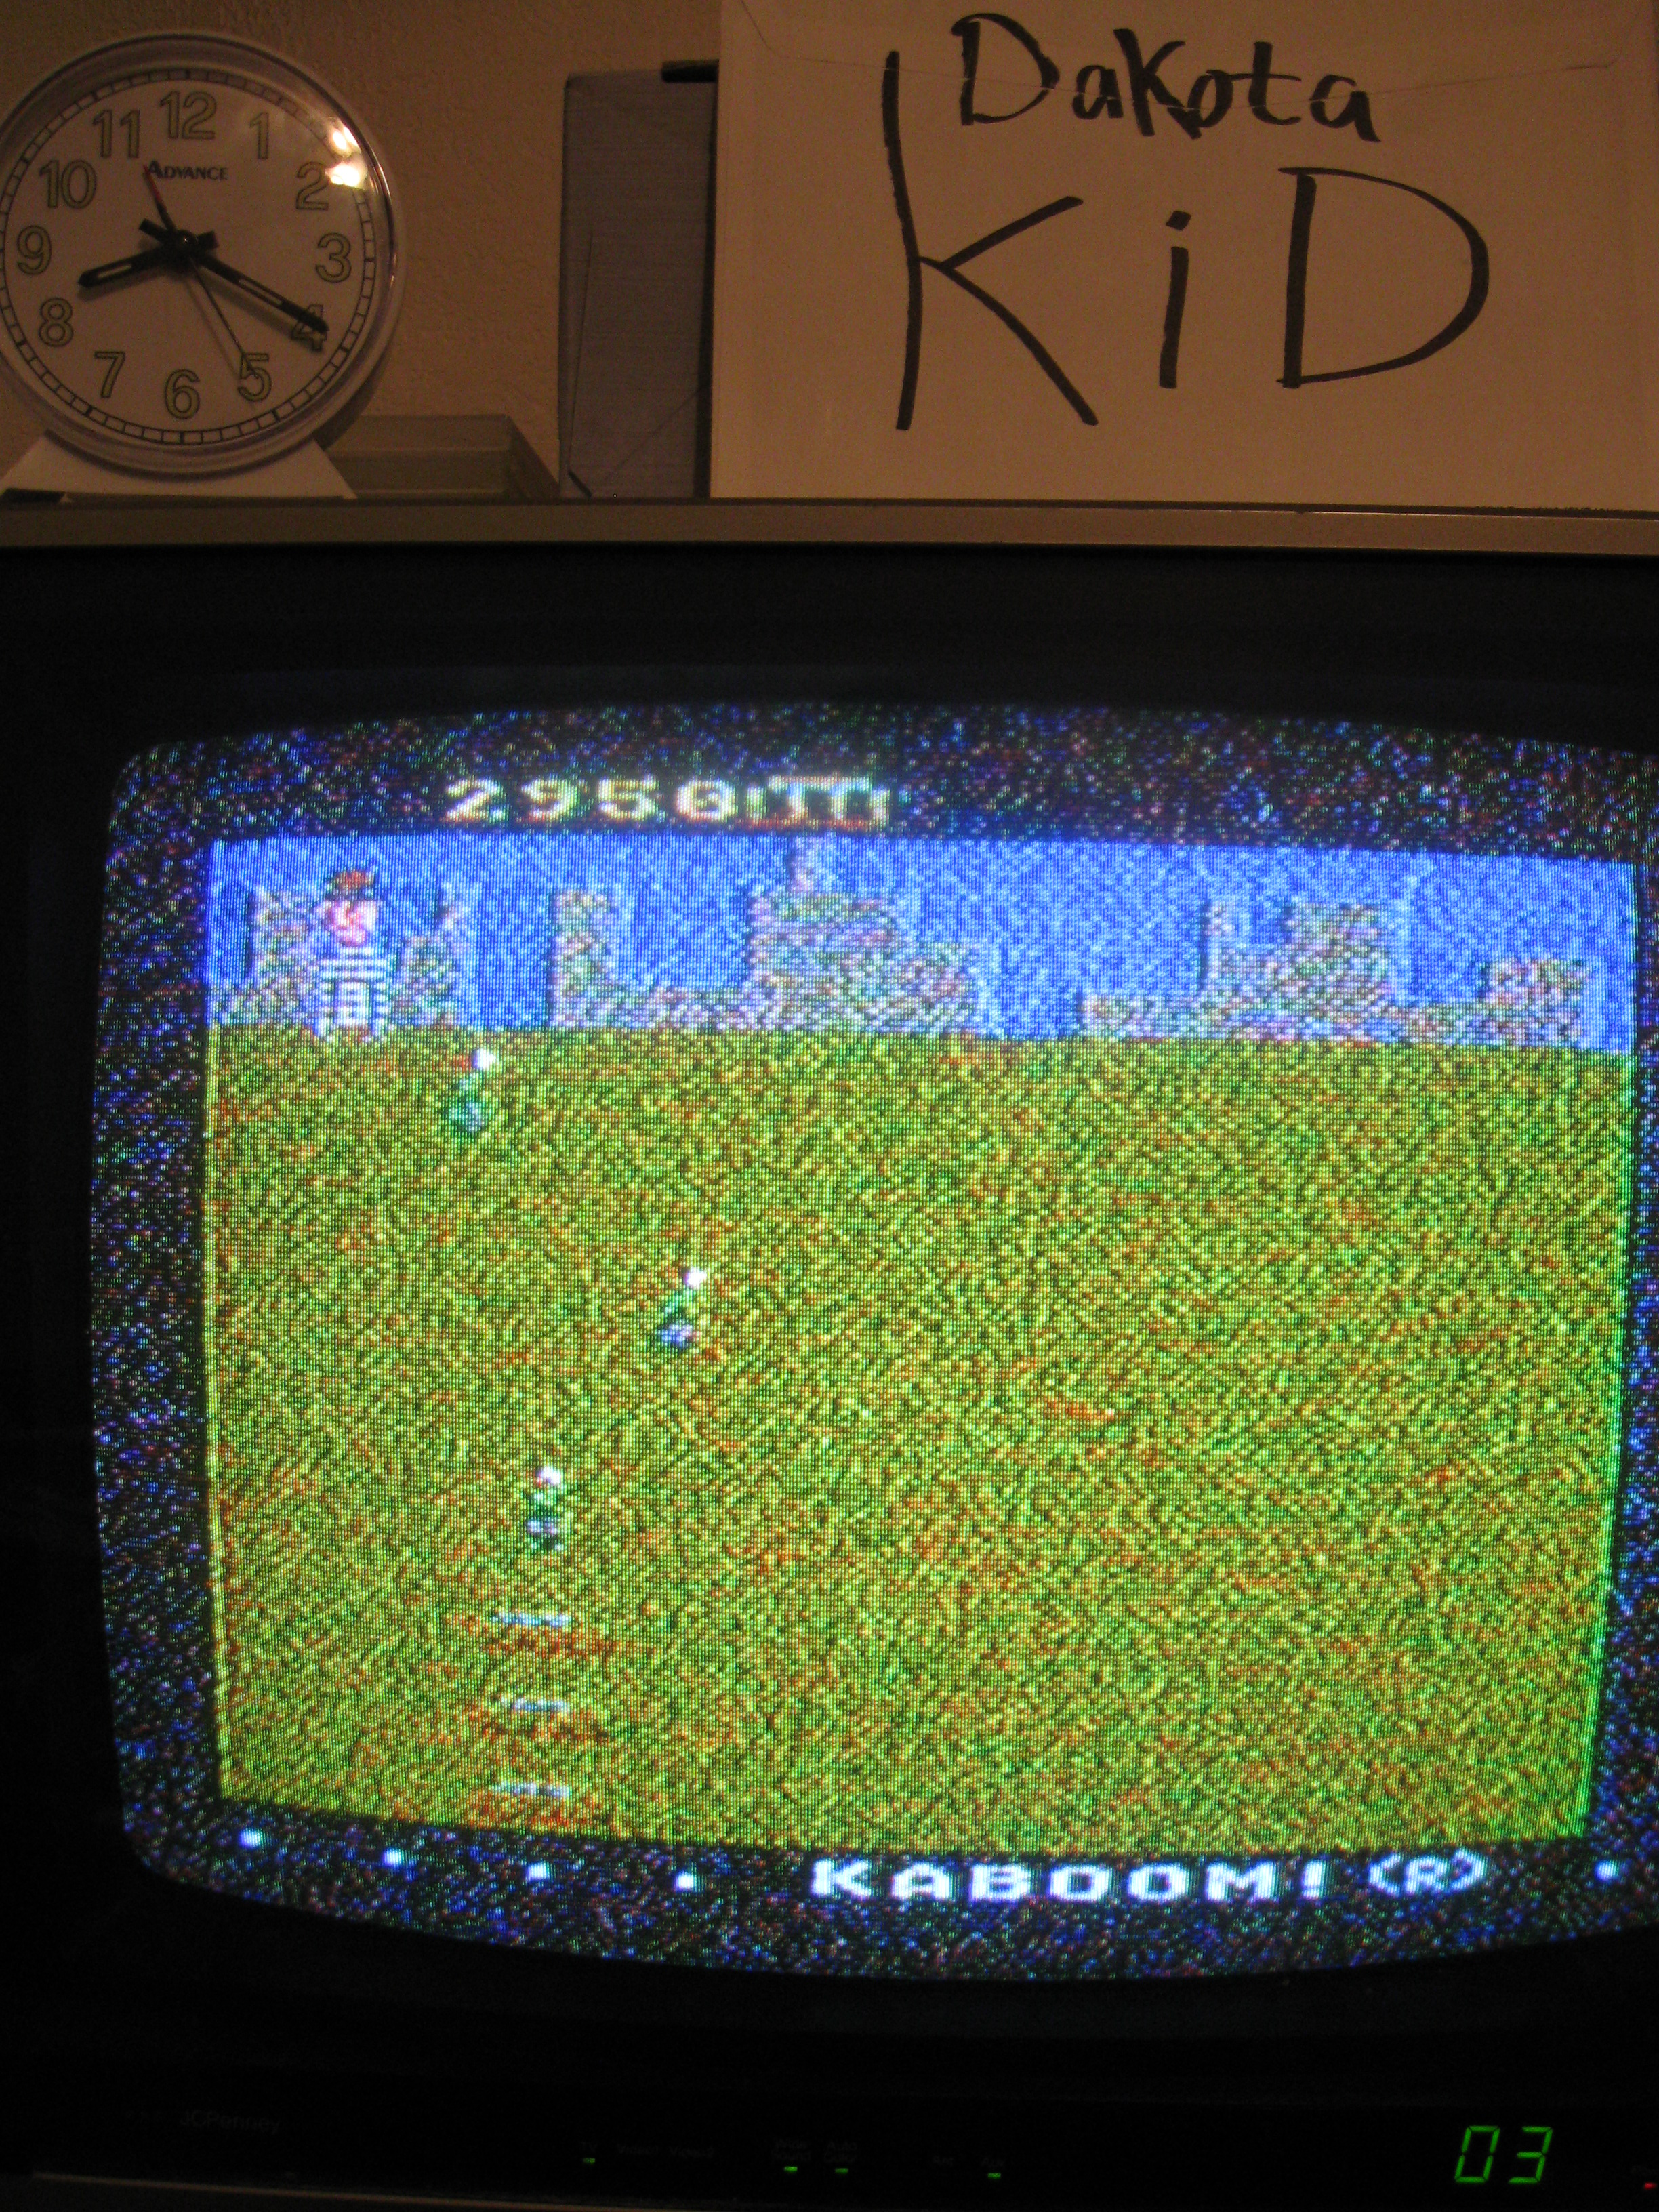 DakotaKid: Kaboom! (Atari 5200) 2,950 points on 2016-04-18 13:38:39